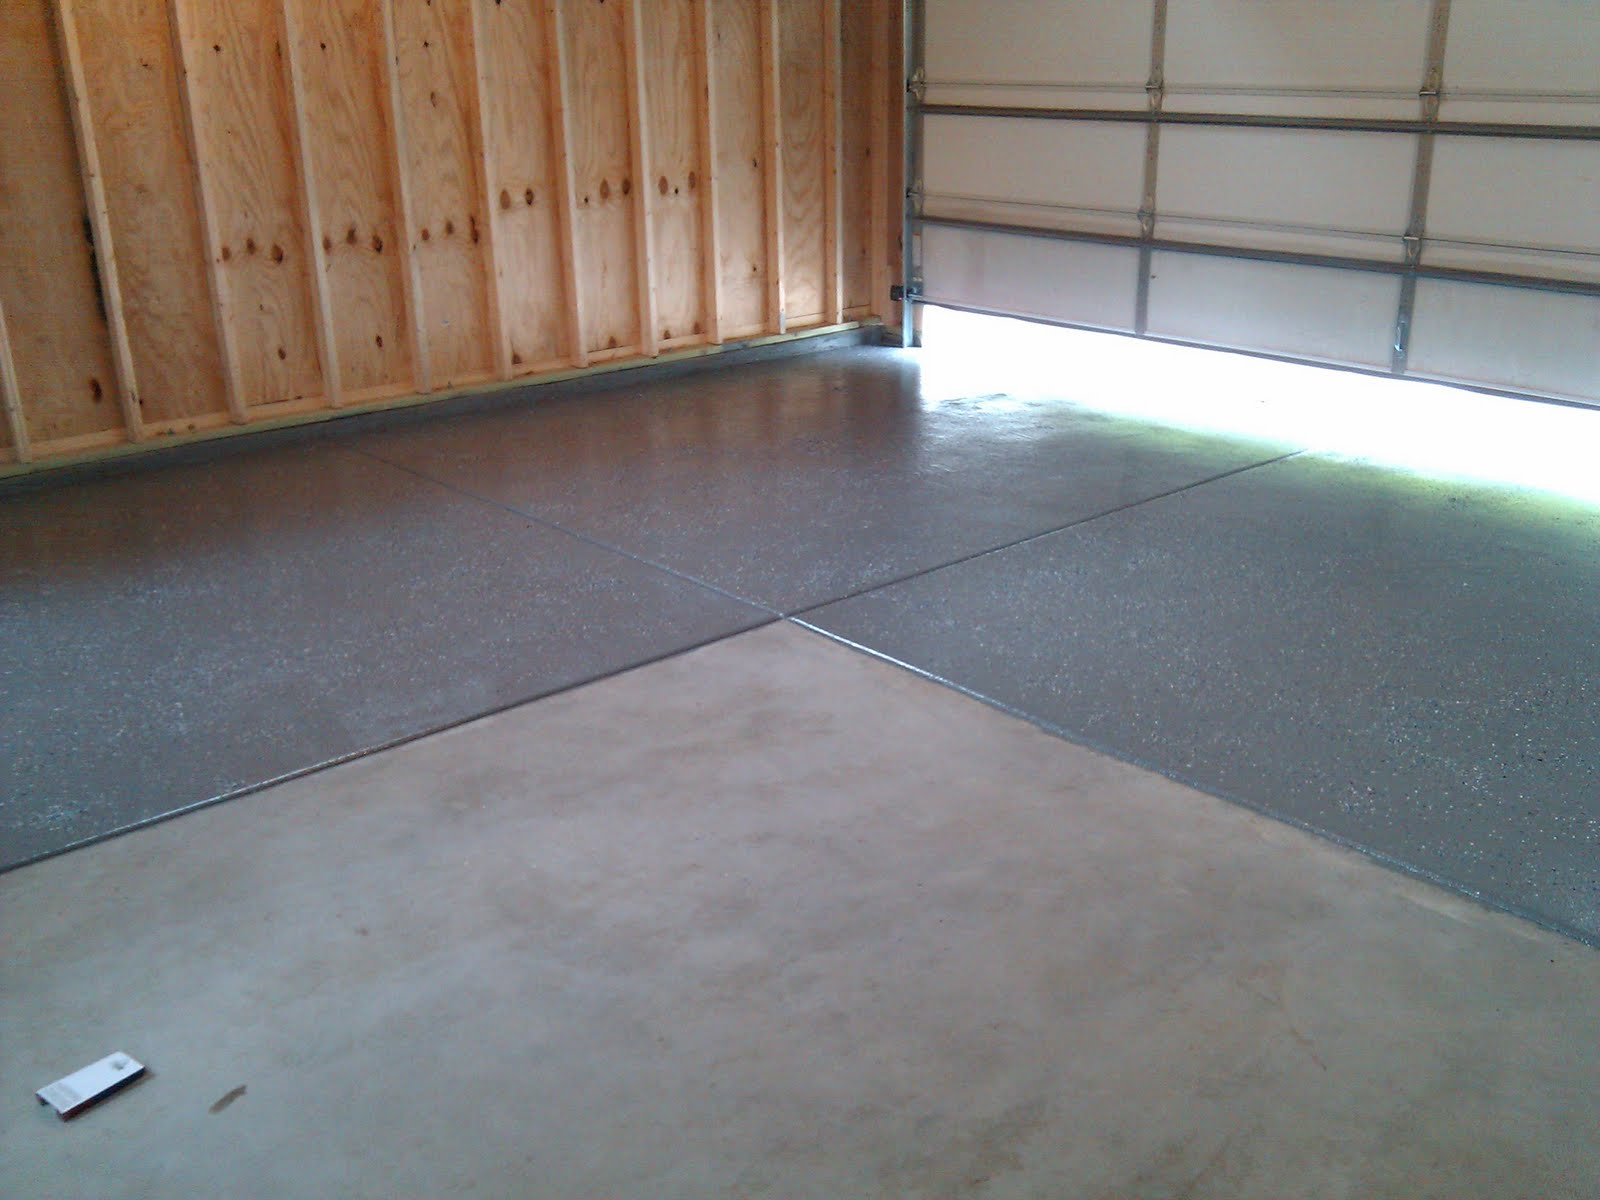 Garage floor diy epoxy floor kit from rust oleum for Garge floor